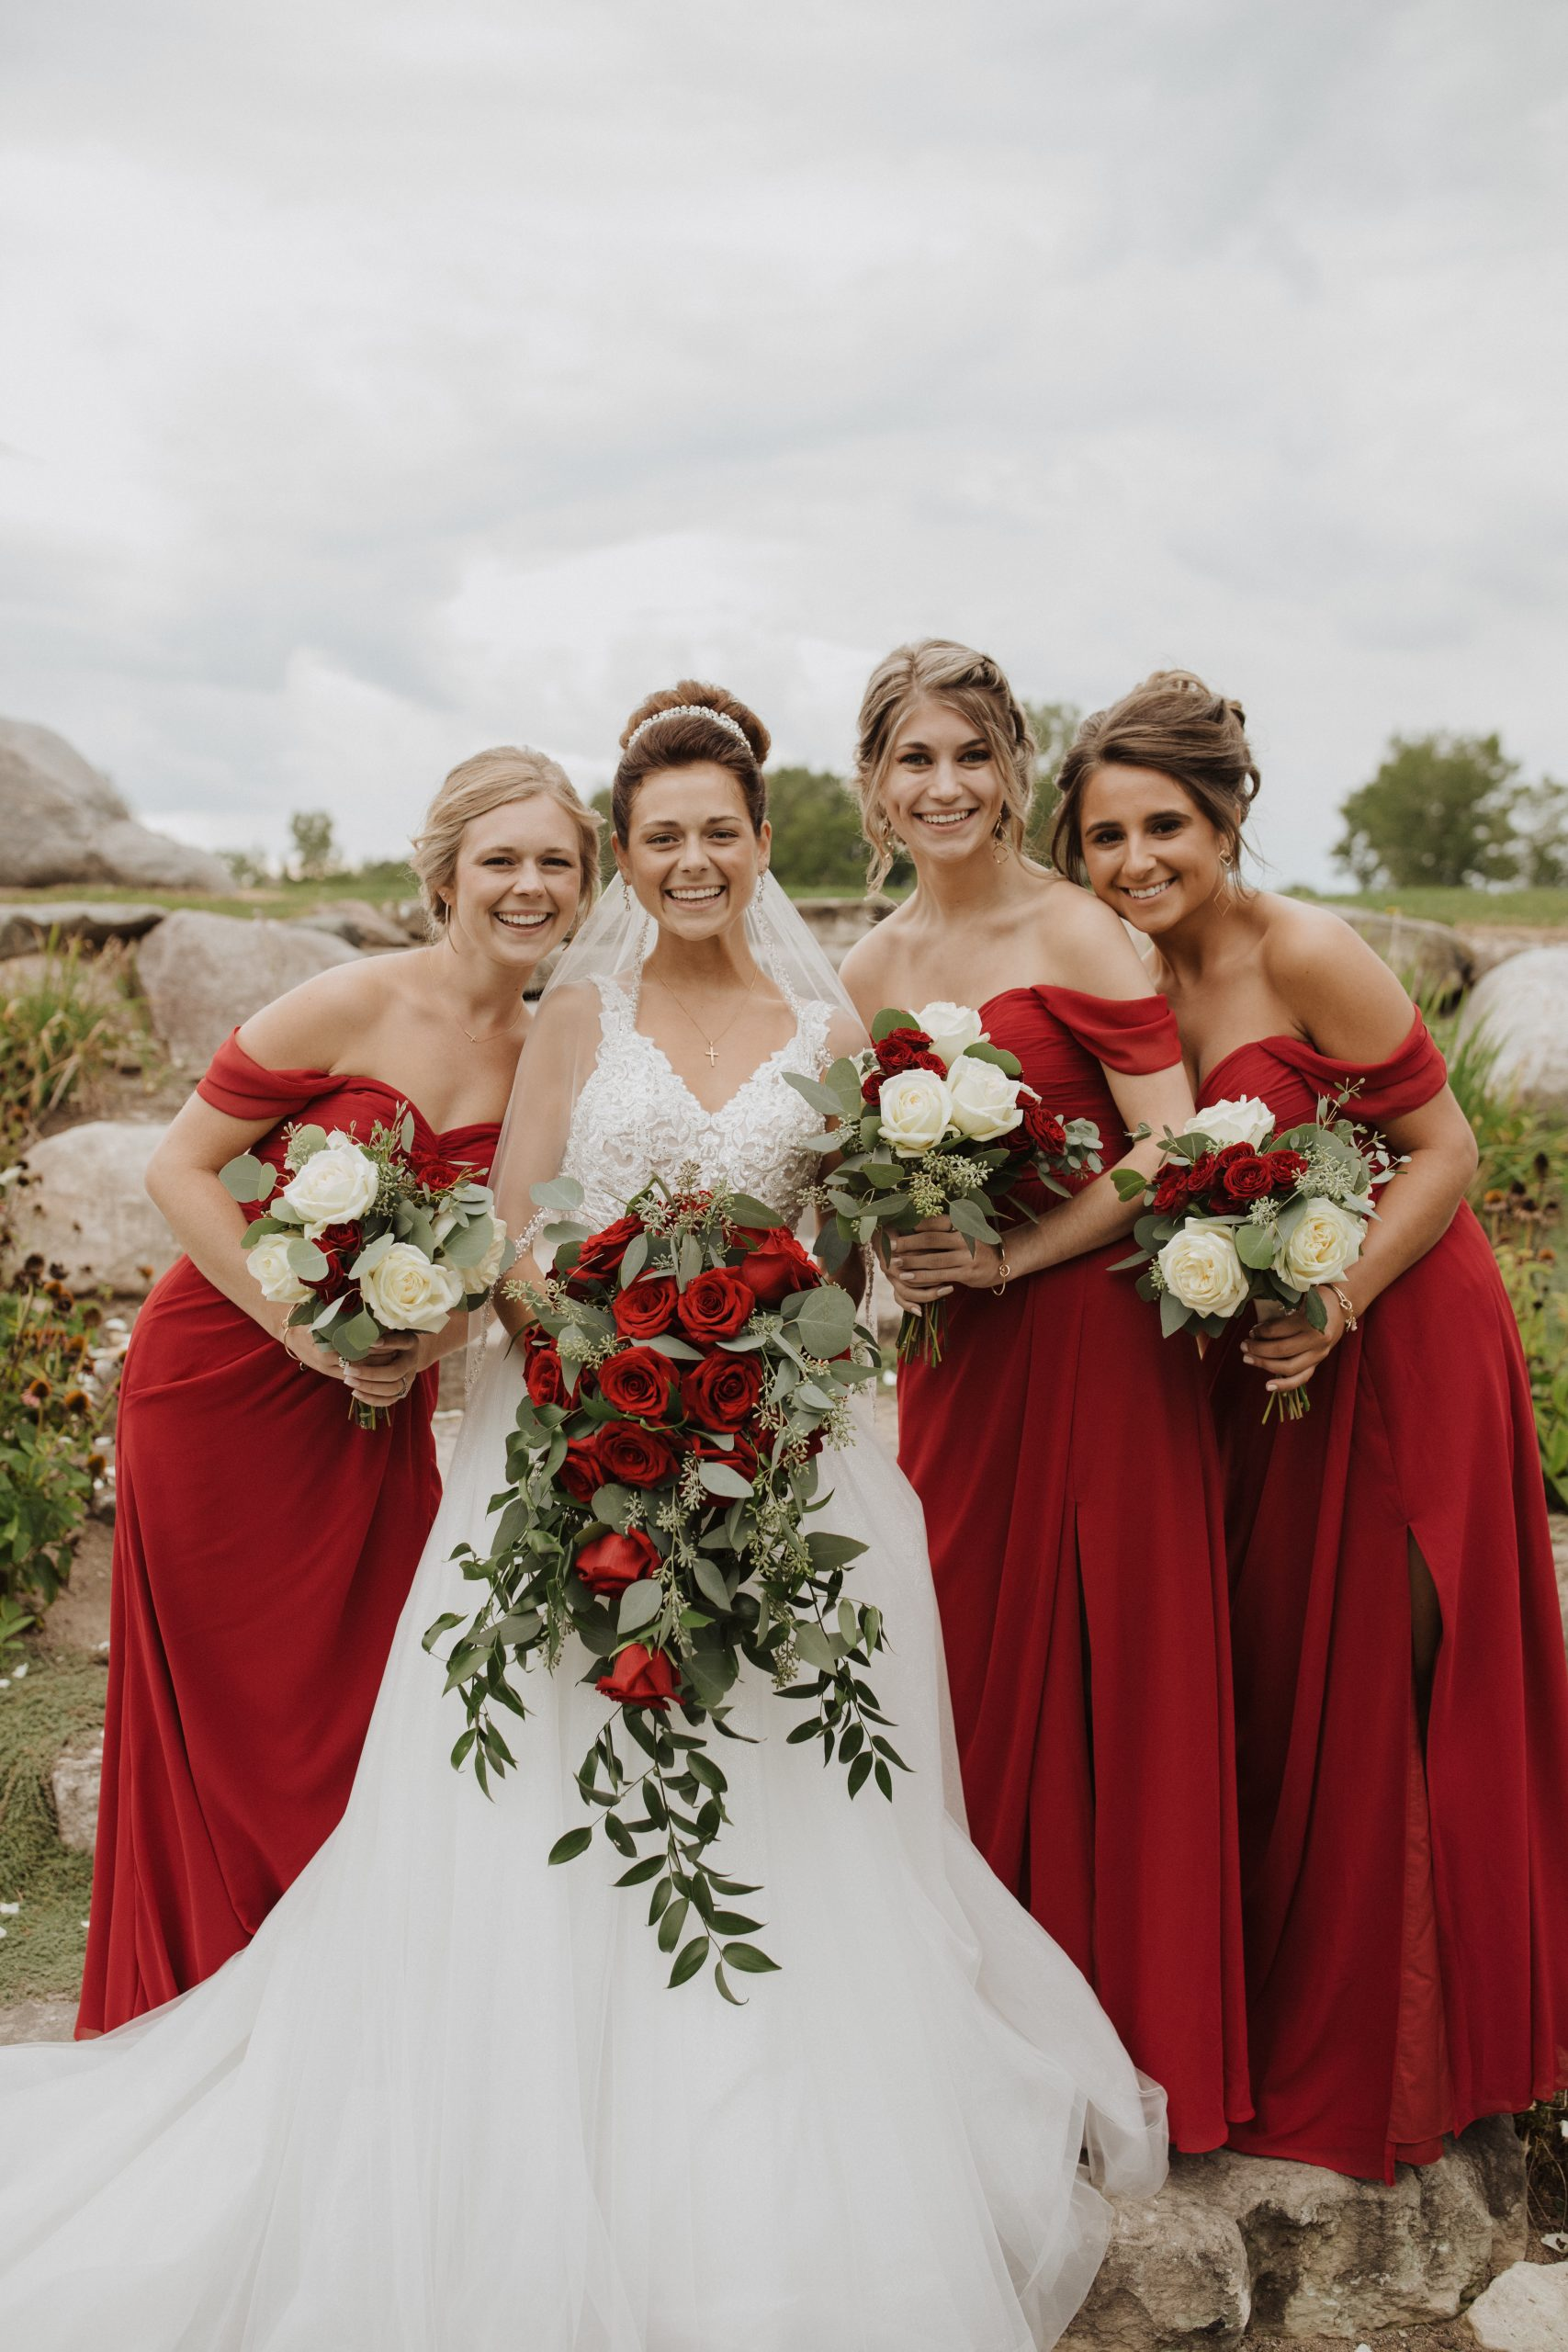 Real Bride with Bridesmaids Wearing Red Dresses